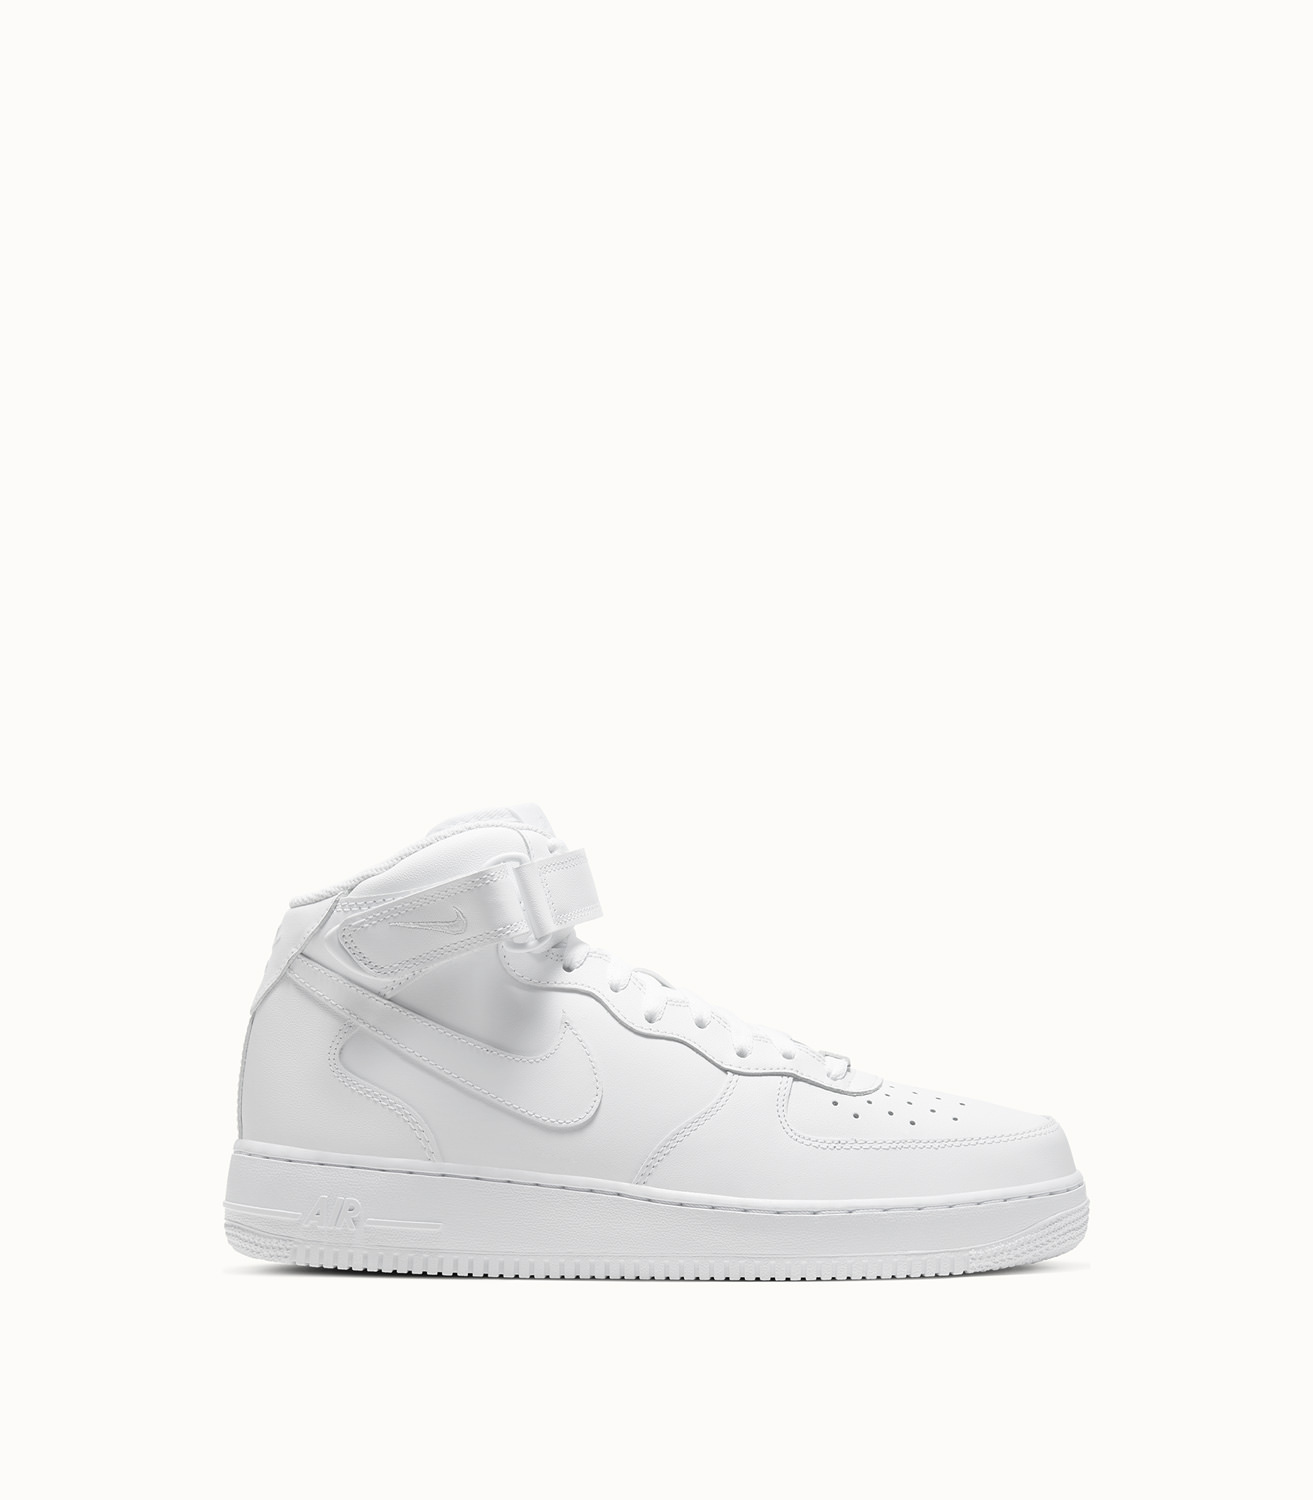 equipaje Venta ambulante Registrarse  NIKE AIR FORCE 1 MID 07 SNEAKERS COLOR WHITE | Playground